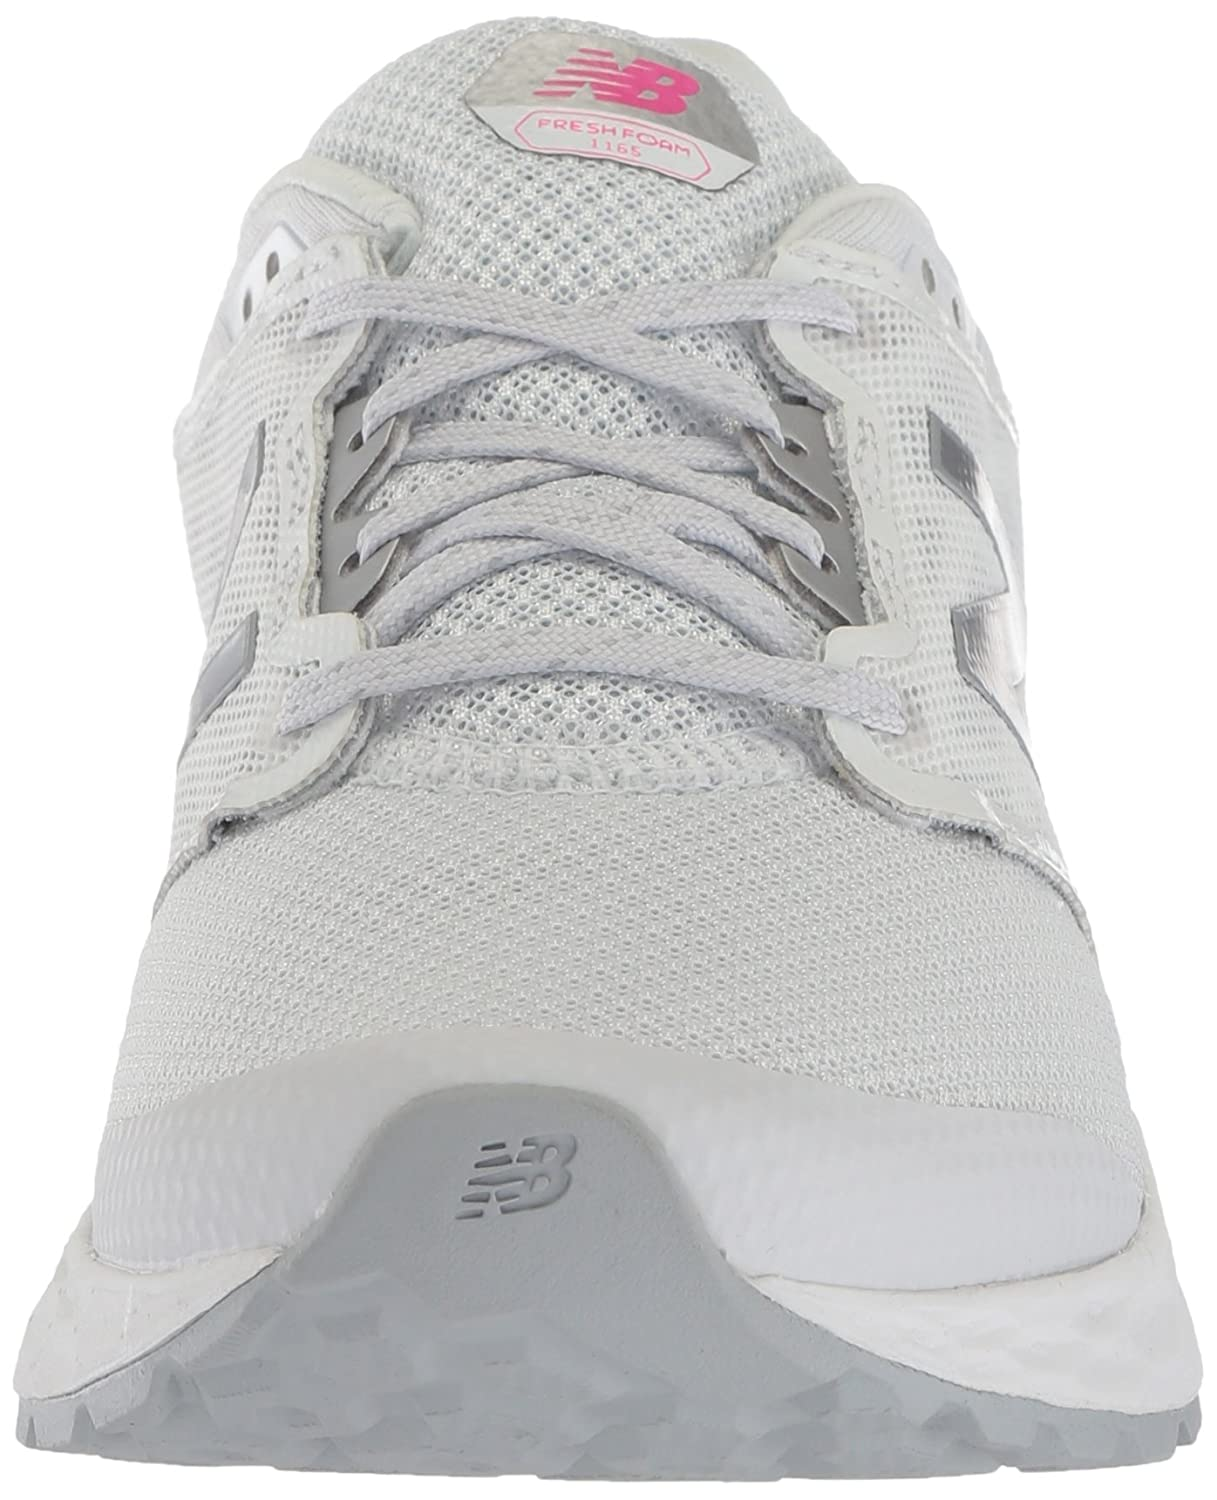 New Balance Women's 1165v1 Fresh Foam Walking Shoe B06XX8X44M 10.5 2E US|Grey/White